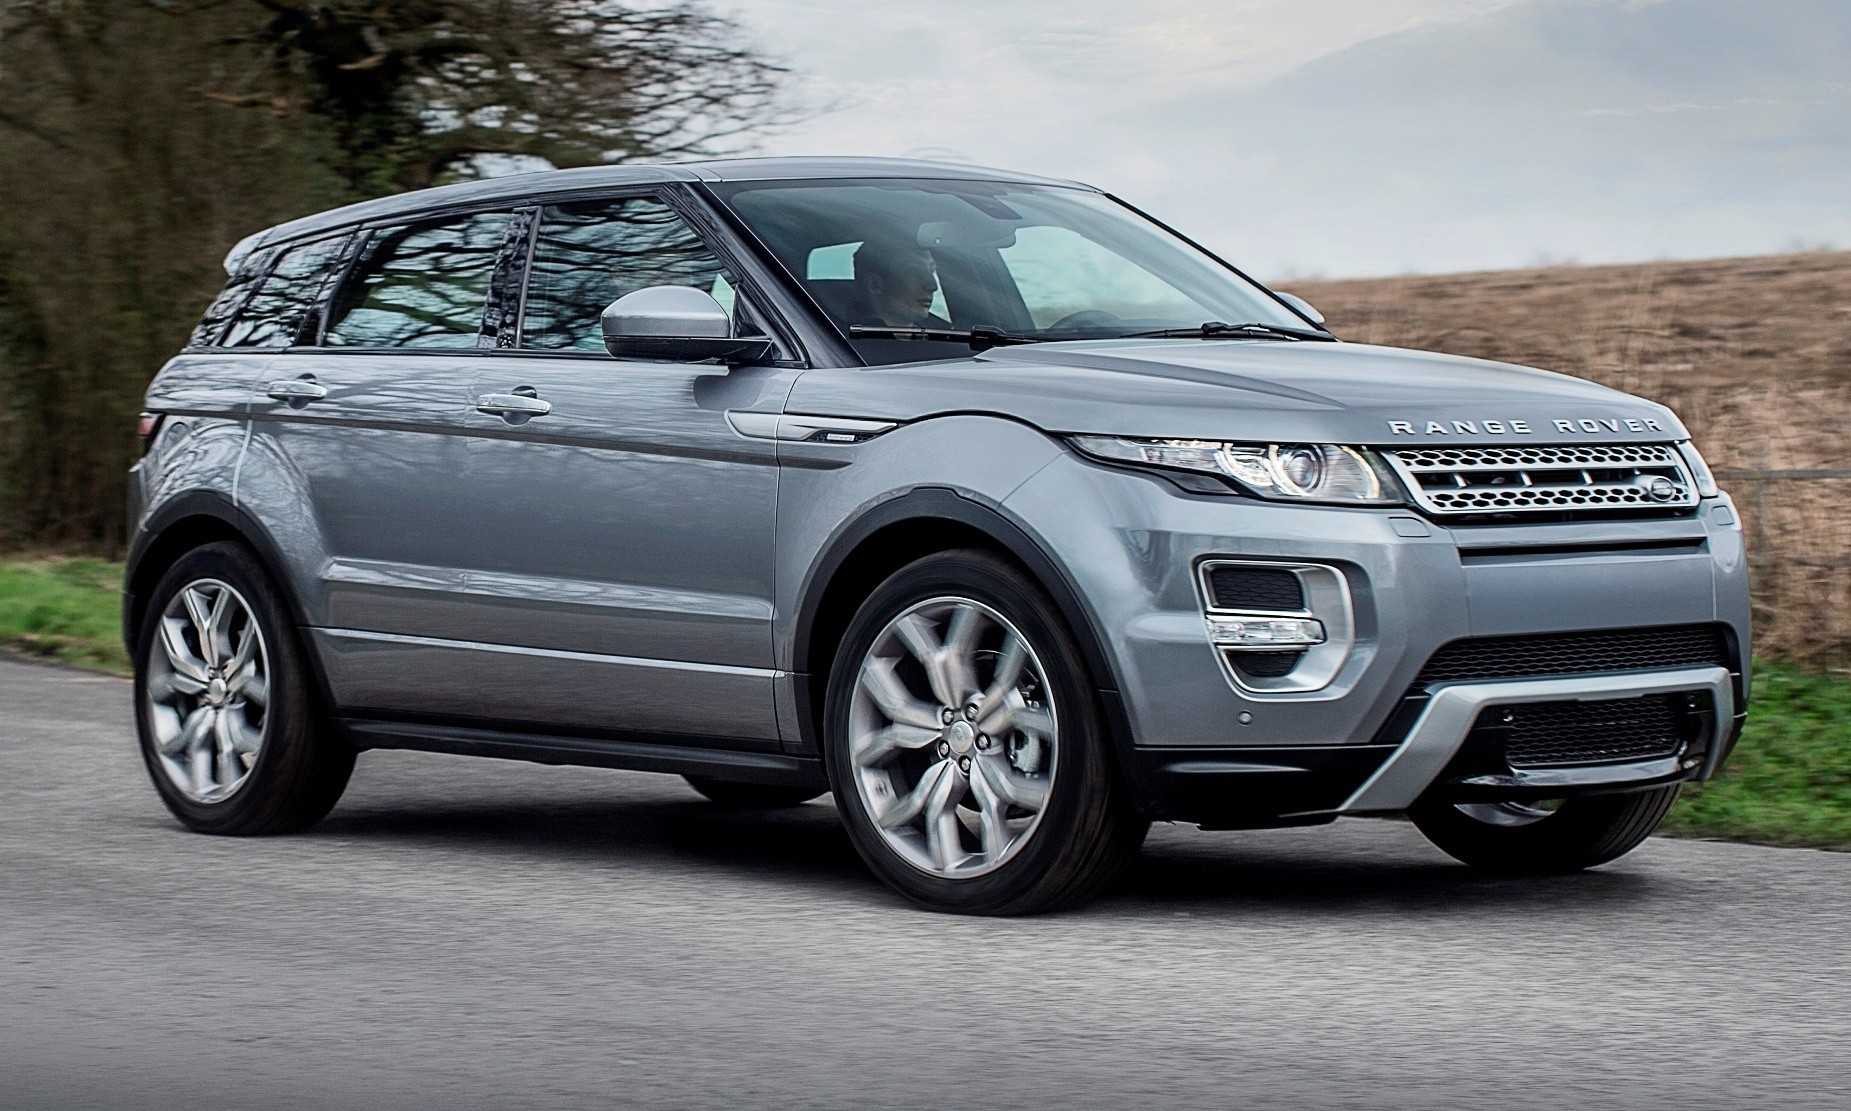 Range Rover Evoque Price >> 2015 Range Rover Evoque Gains 9-Speed Auto, Refreshed Info Tech and Boosted Engine HP